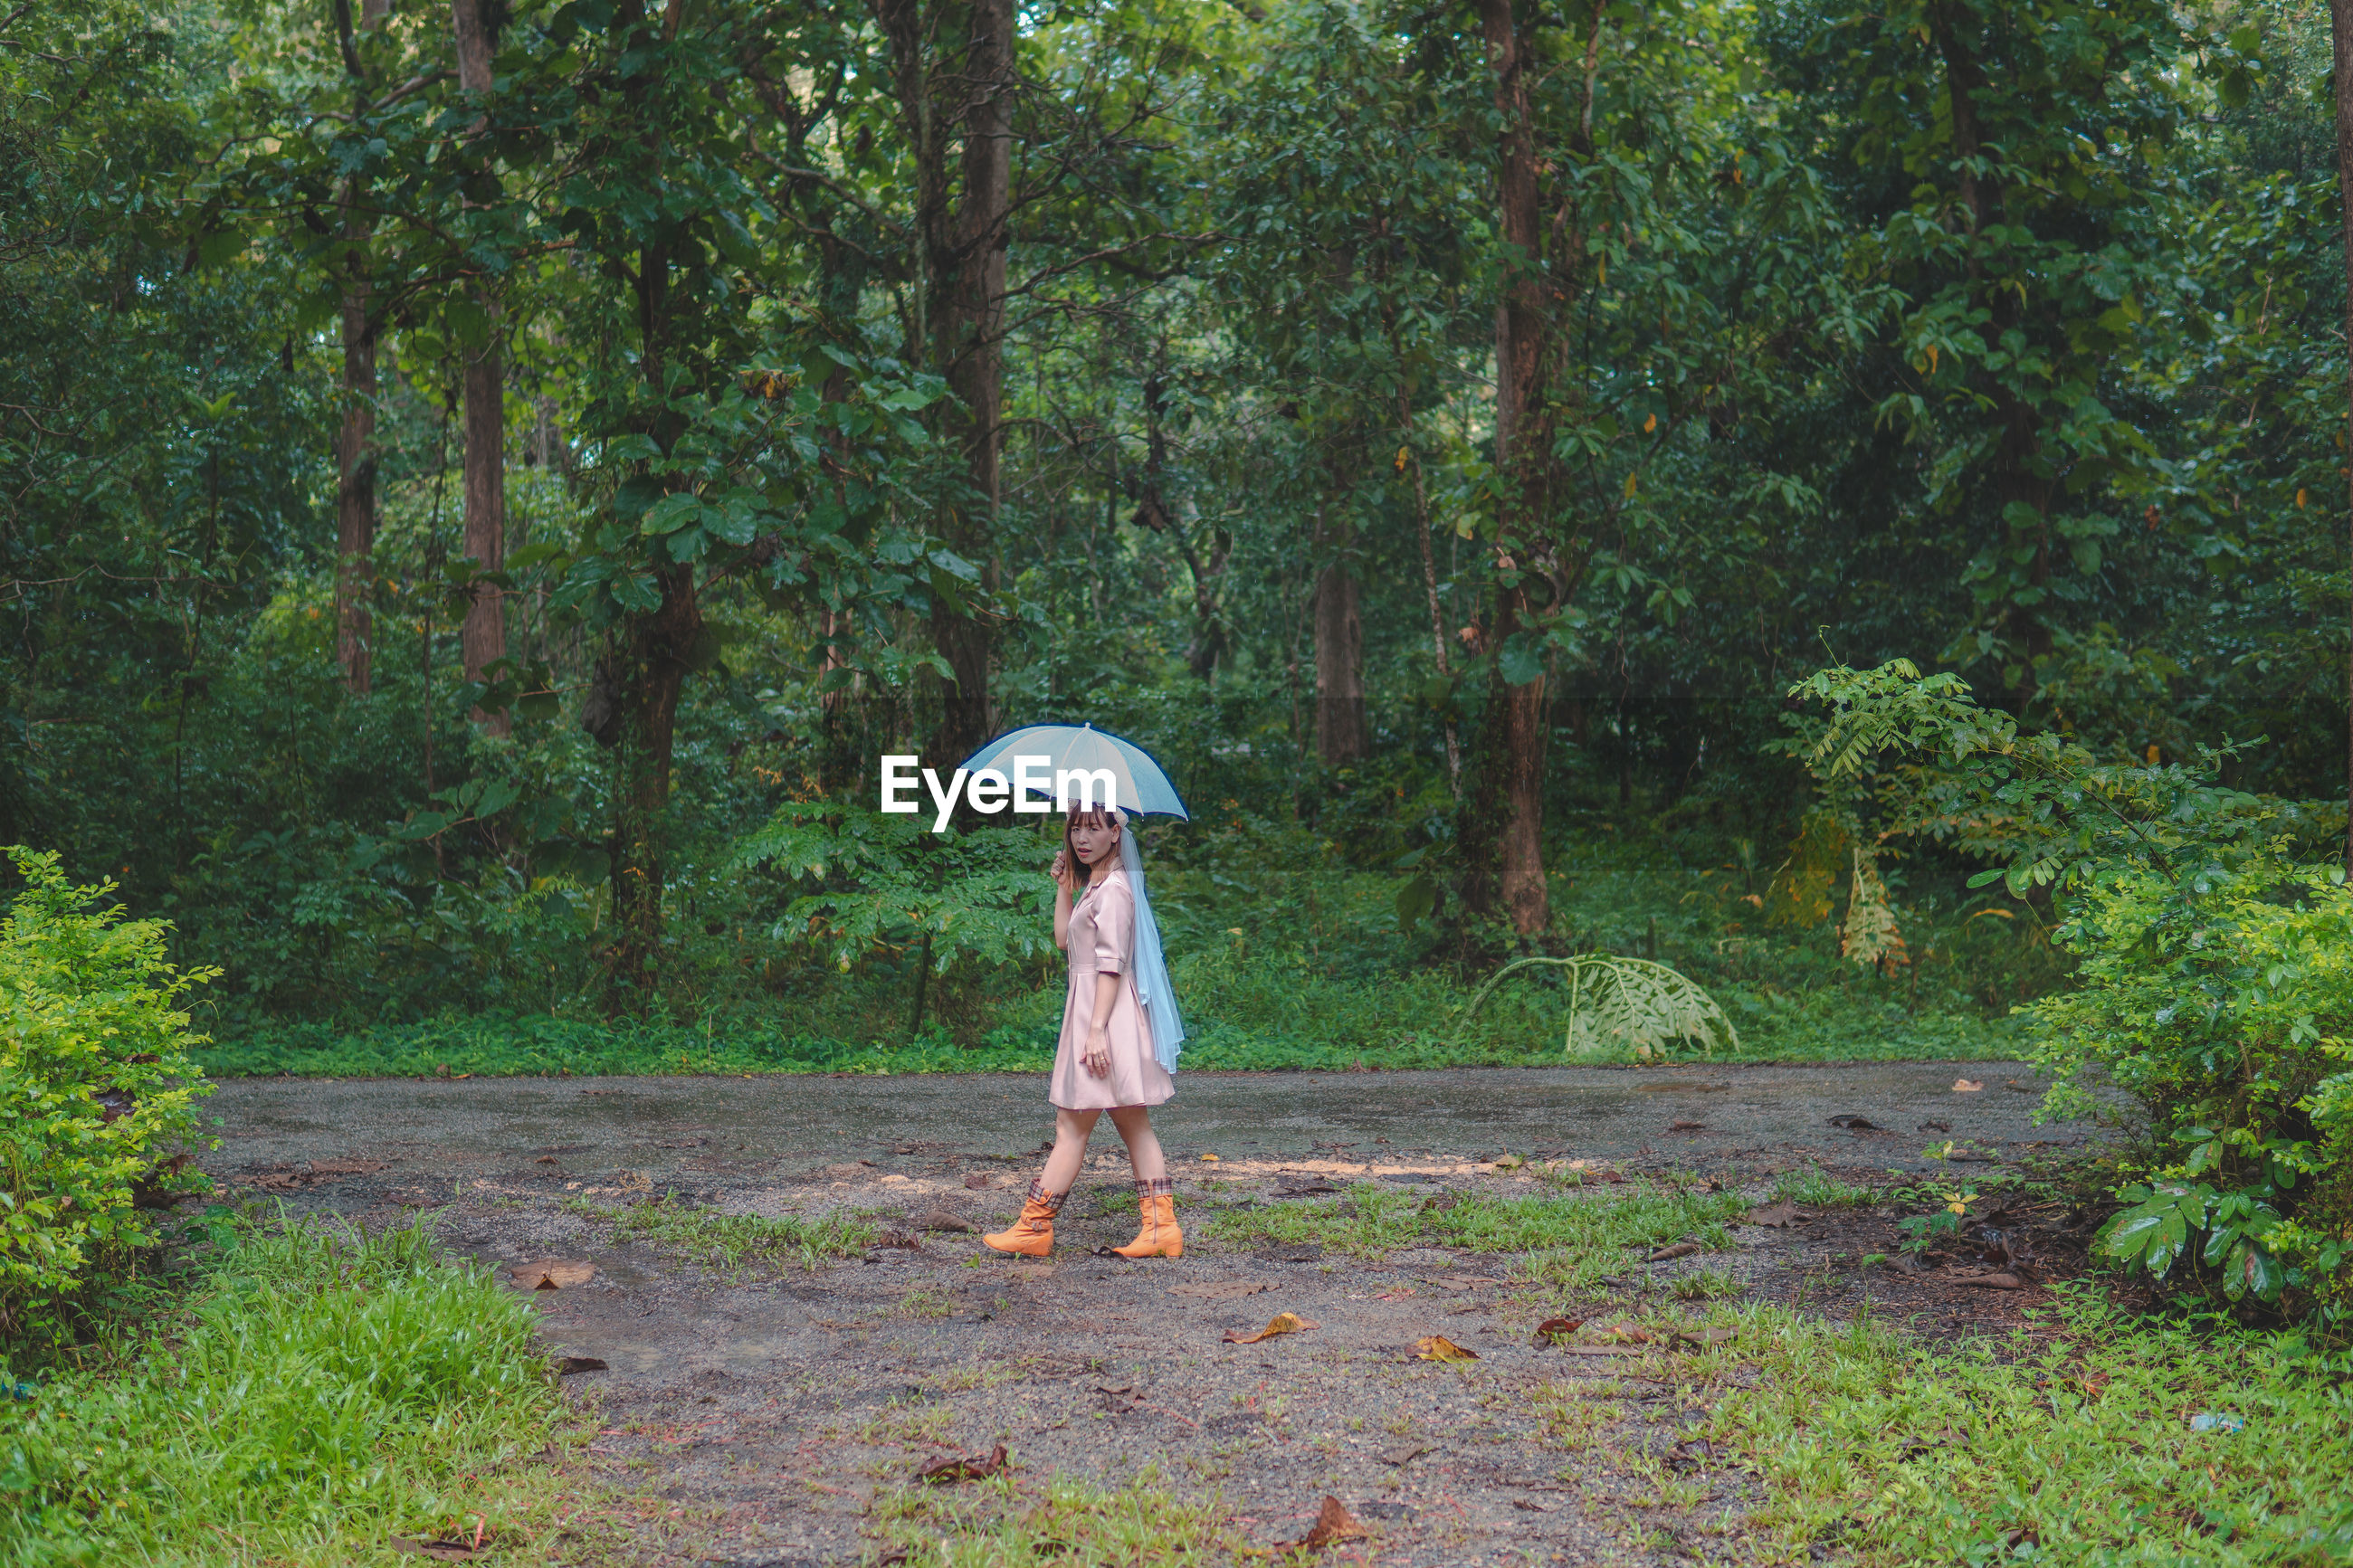 Side view of mid adult woman with umbrella walking on dirt road against trees in forest